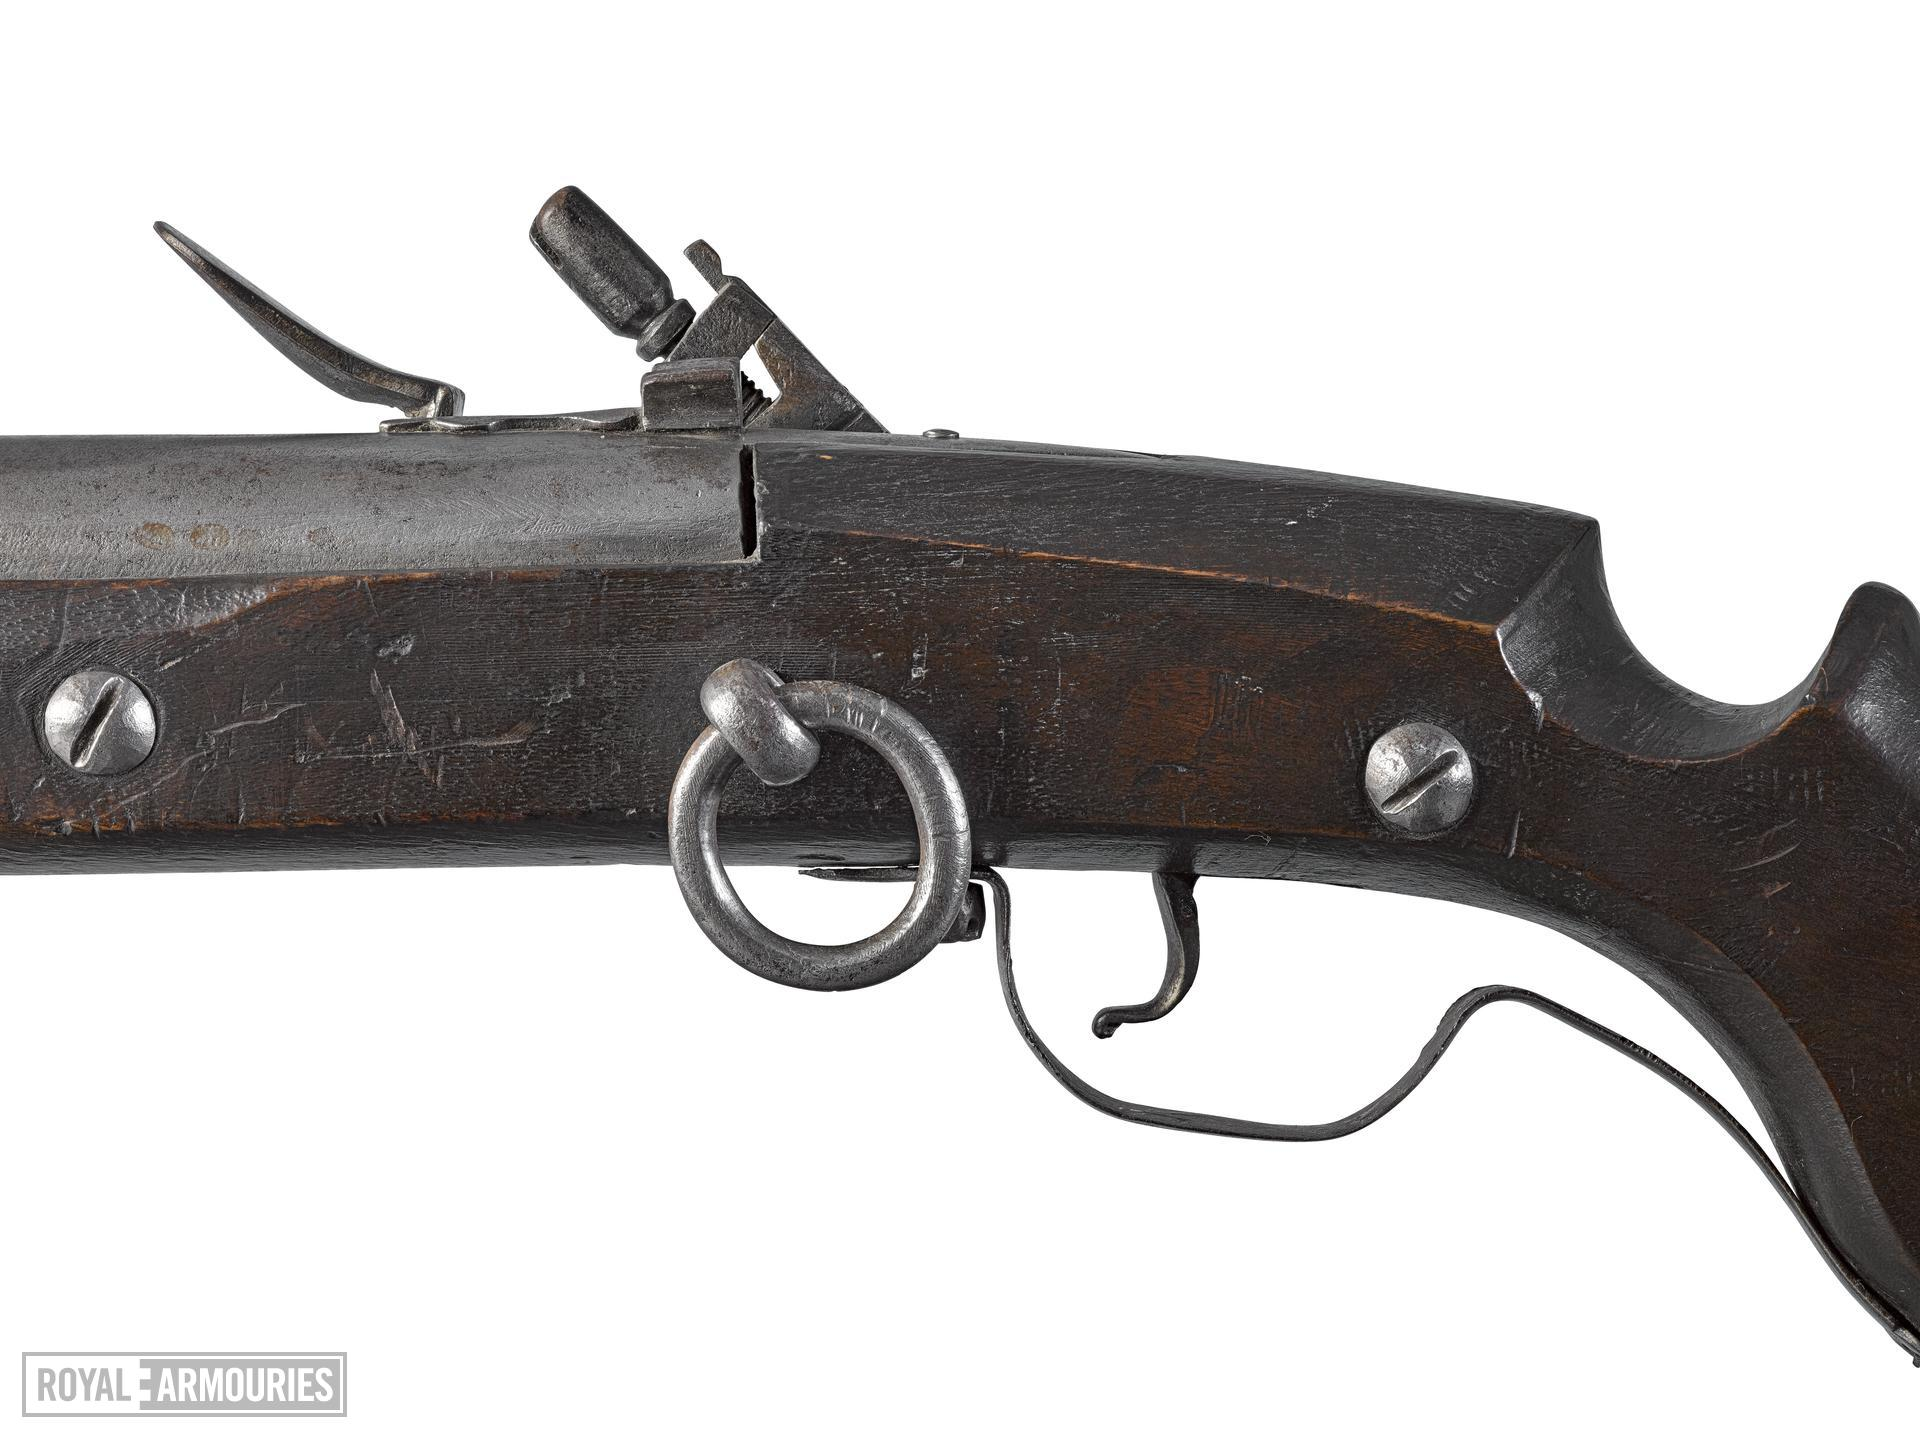 Flintlock muzzle-loading carbine. Littlecote collection. XII.5462